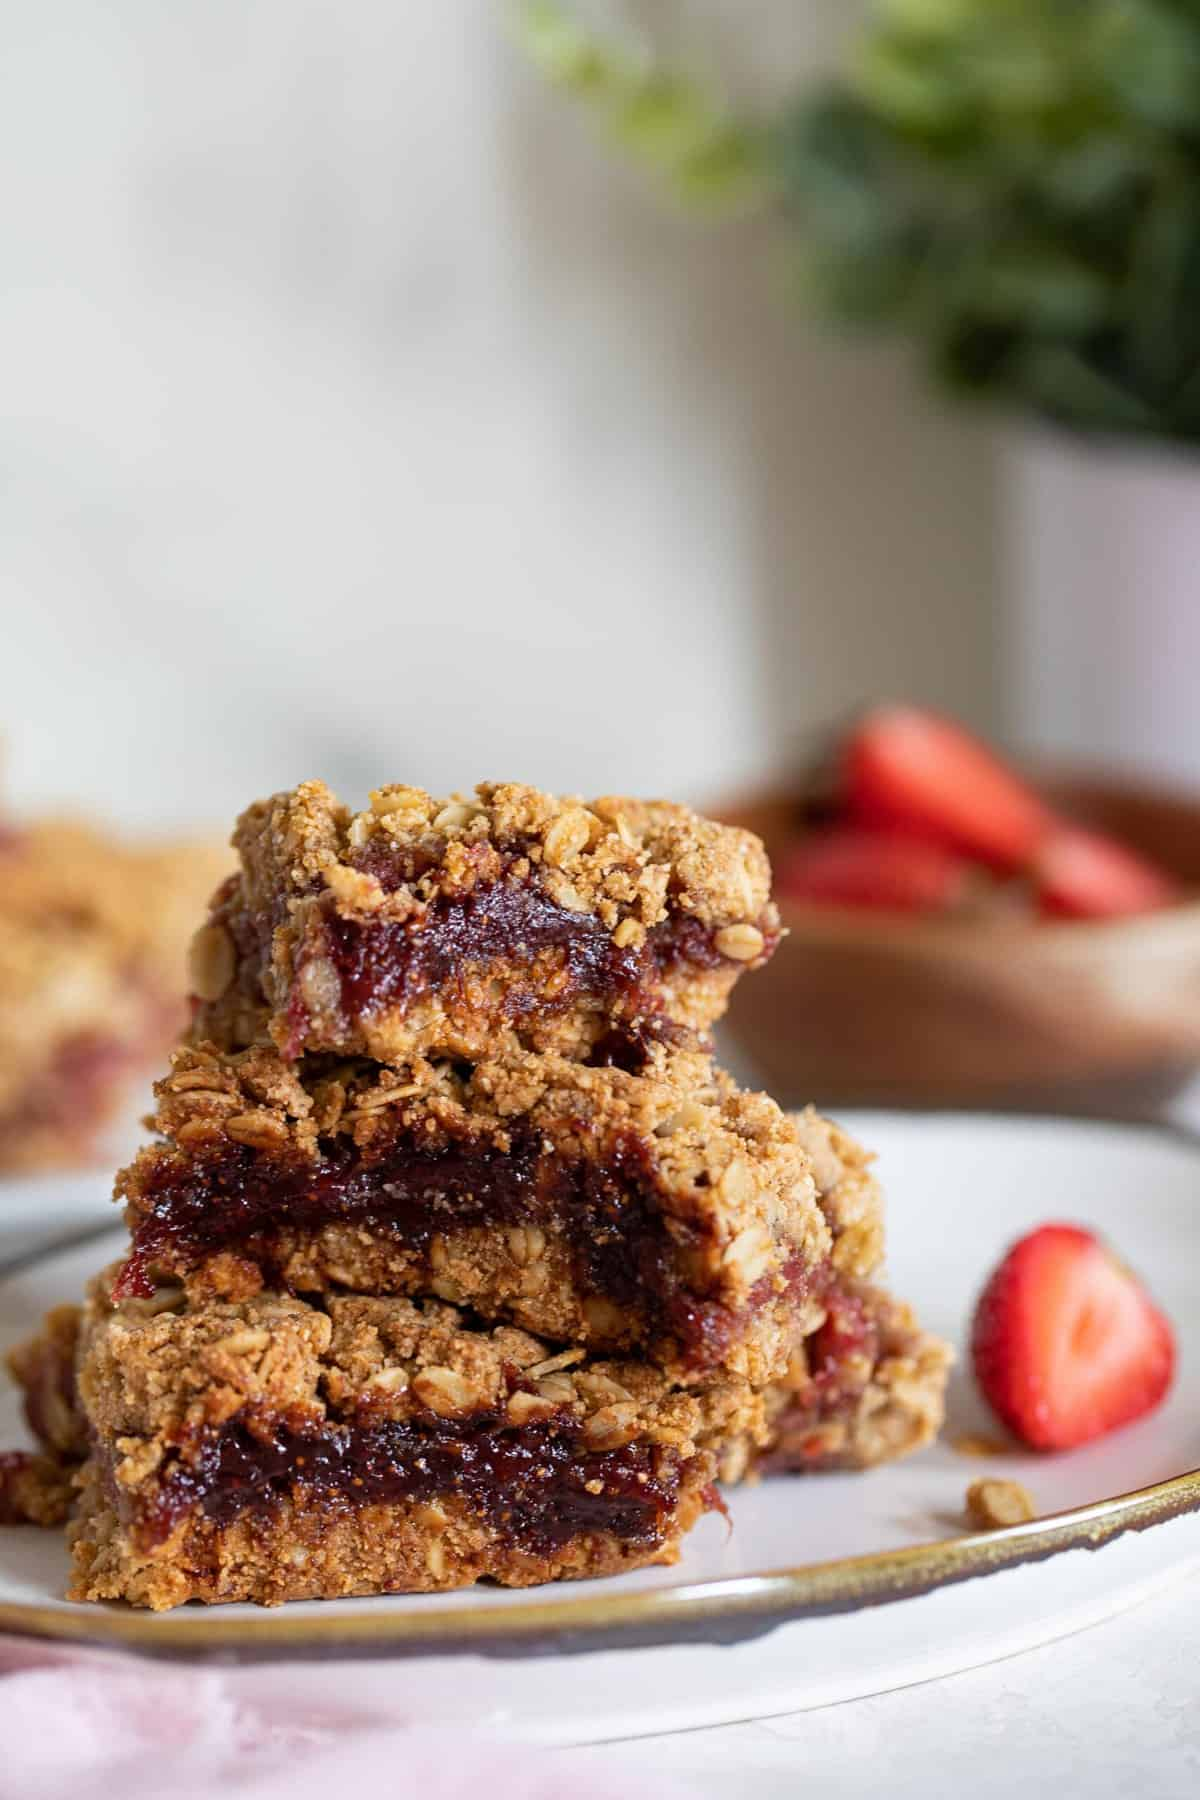 Vegan Strawberry Peanut Butter Oatmeal Bars